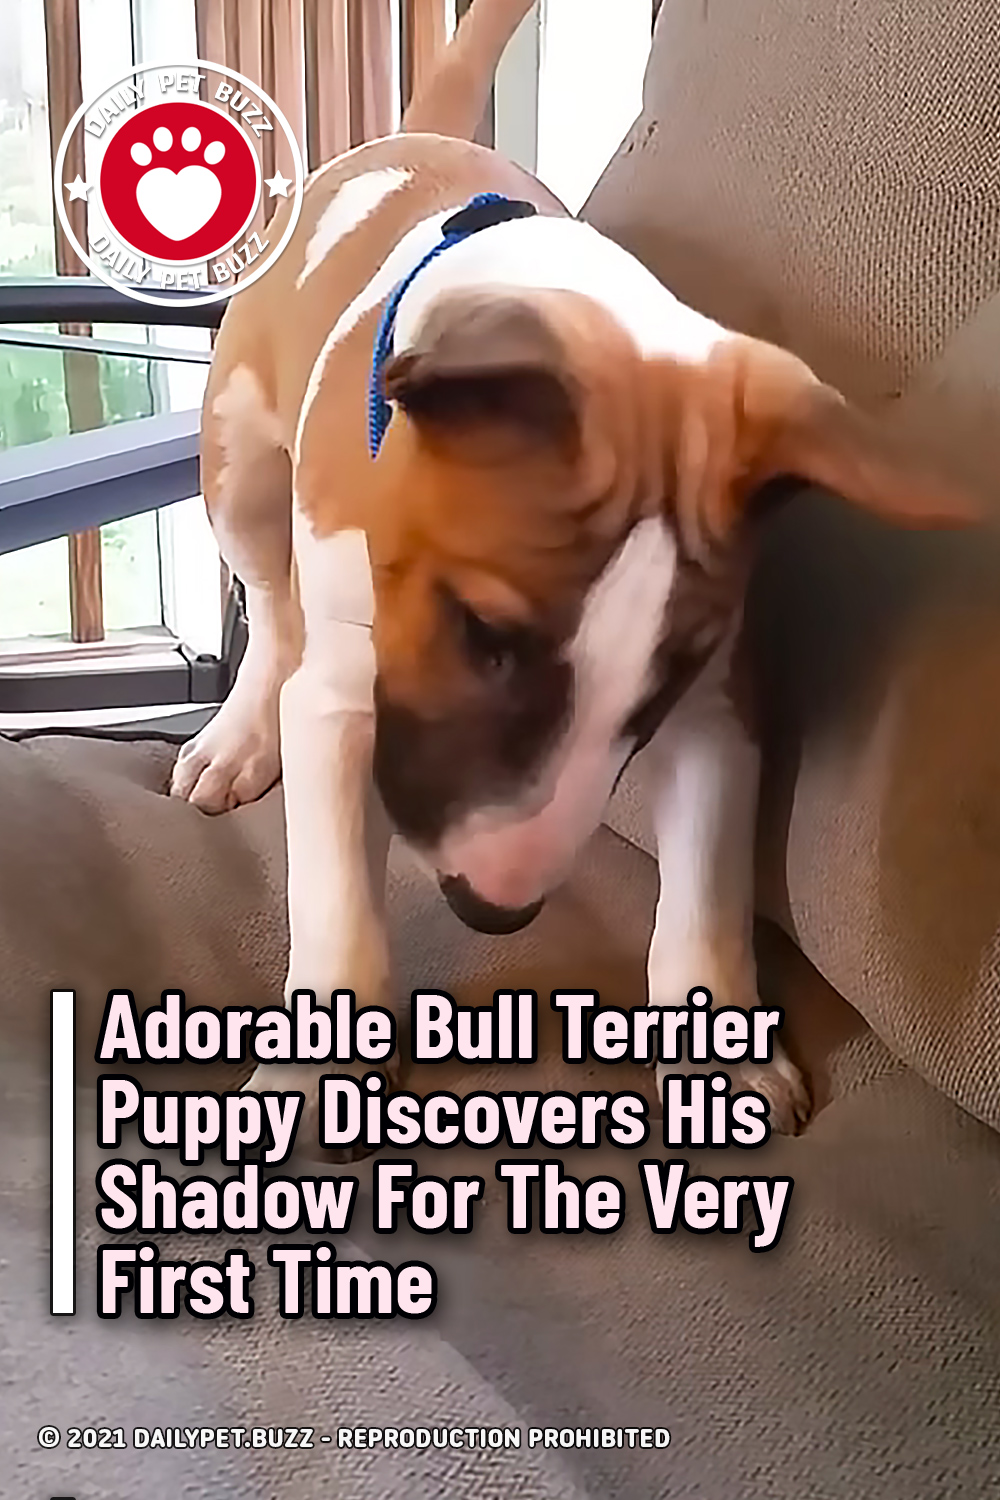 Adorable Bull Terrier Puppy Discovers His Shadow For The Very First Time